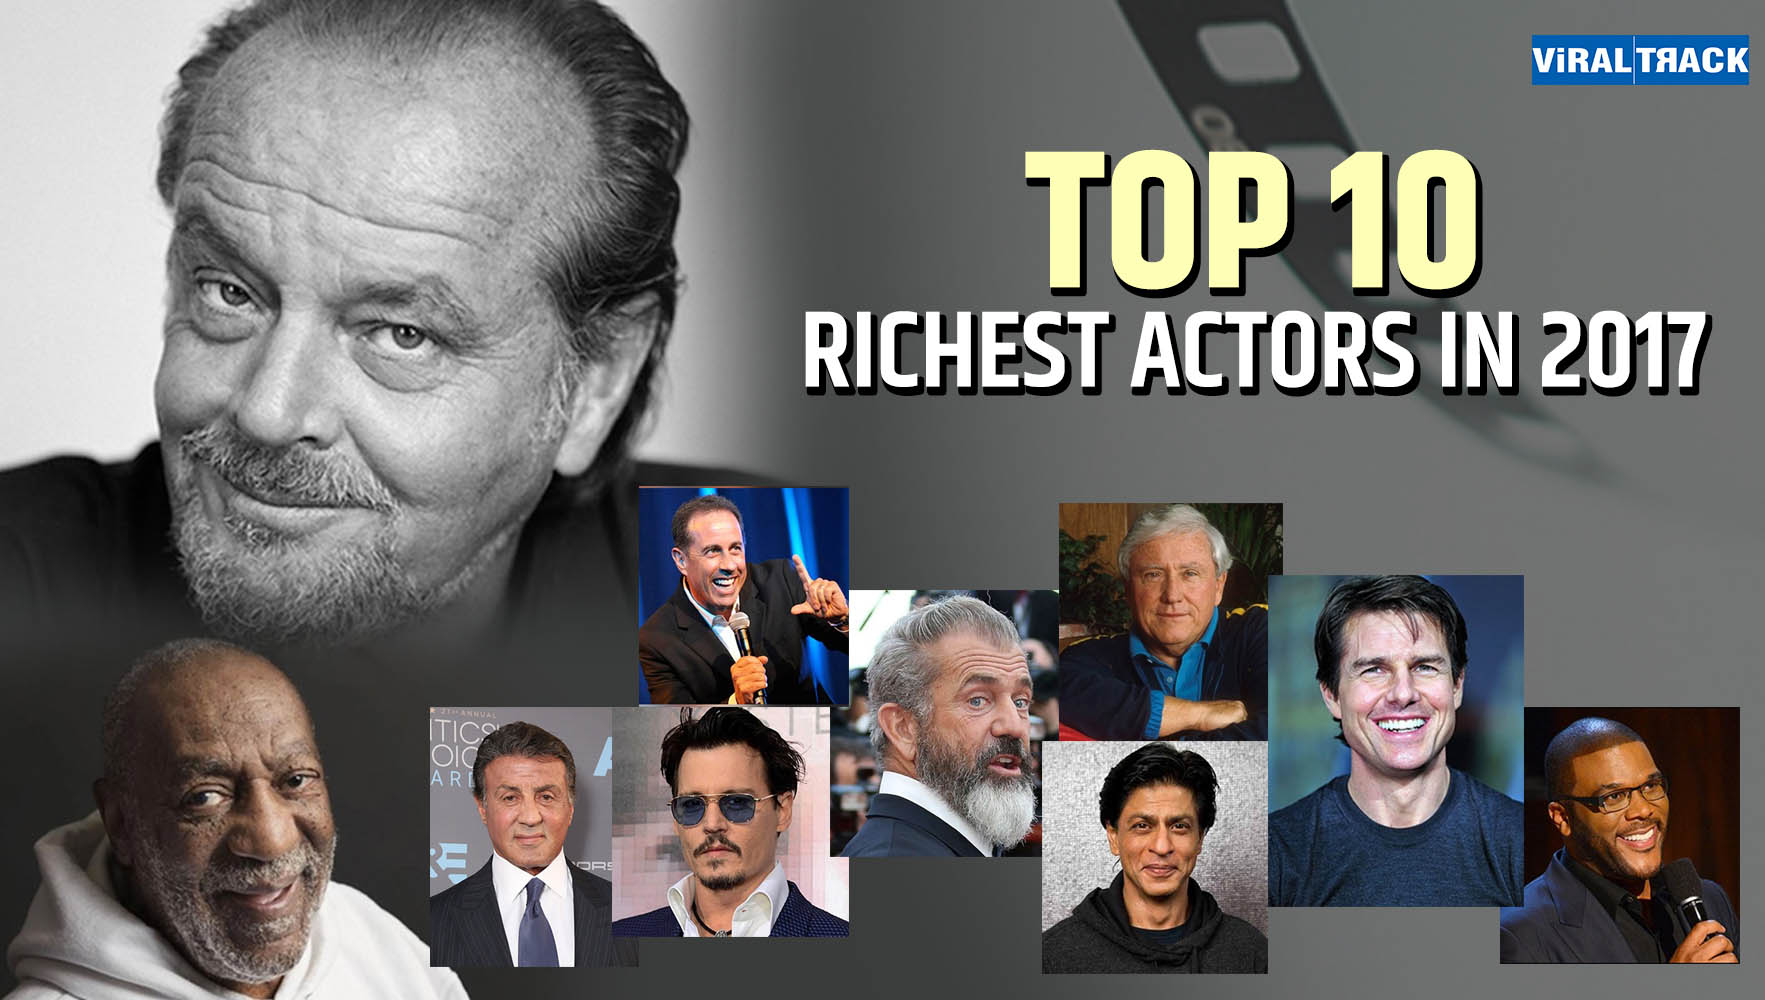 Top 10 Richest Actors in 2017